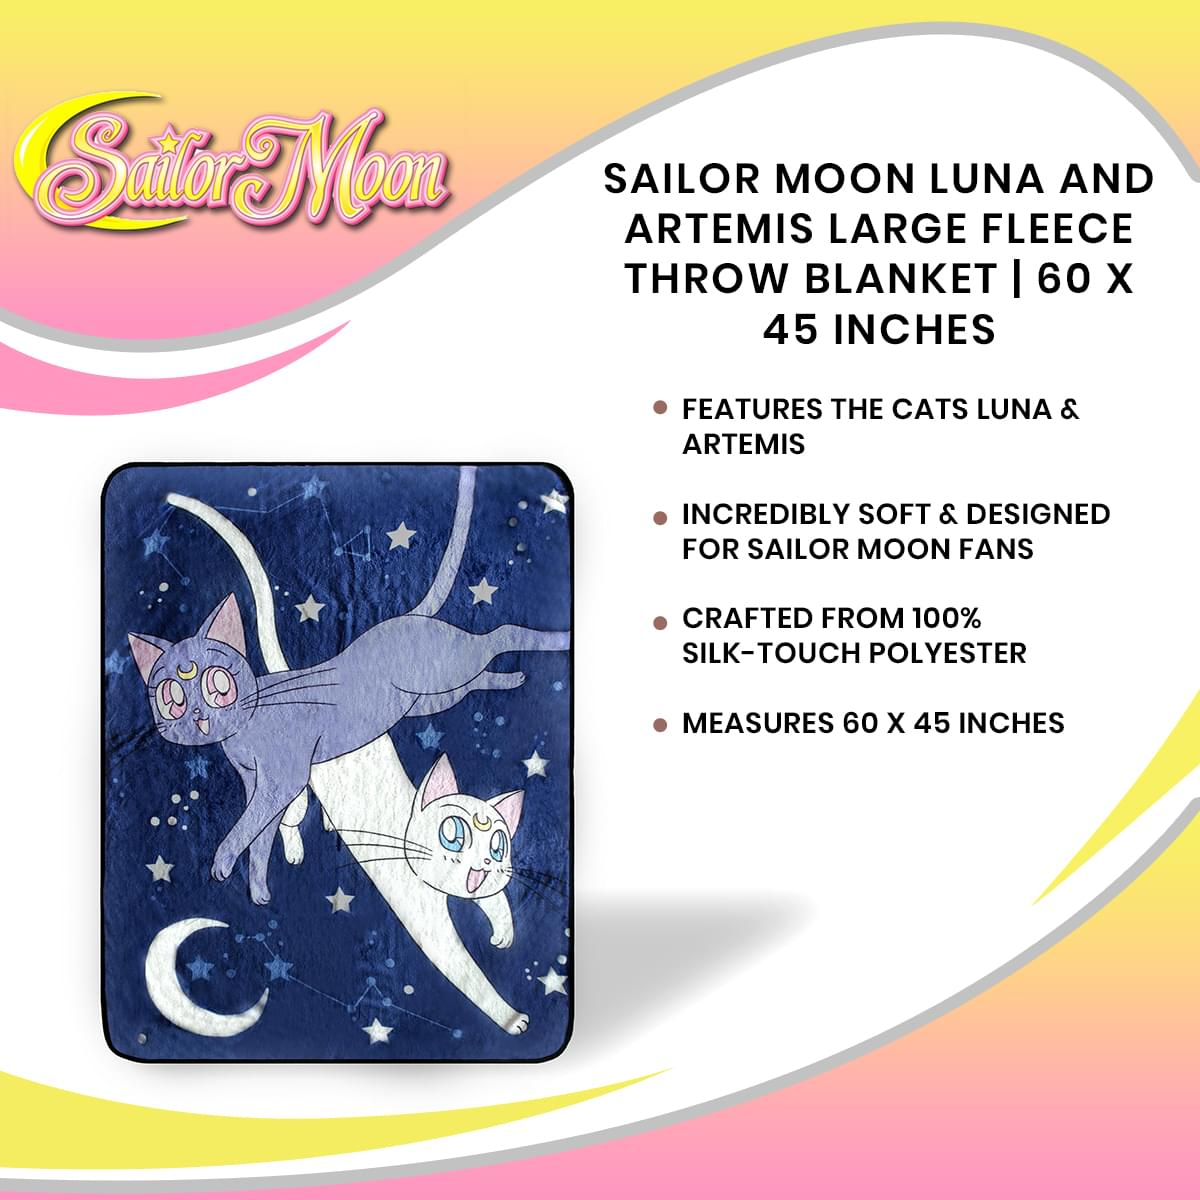 Sailor Moon Luna And Artemis Large Fleece Throw Blanket | 60 x 45 Inches